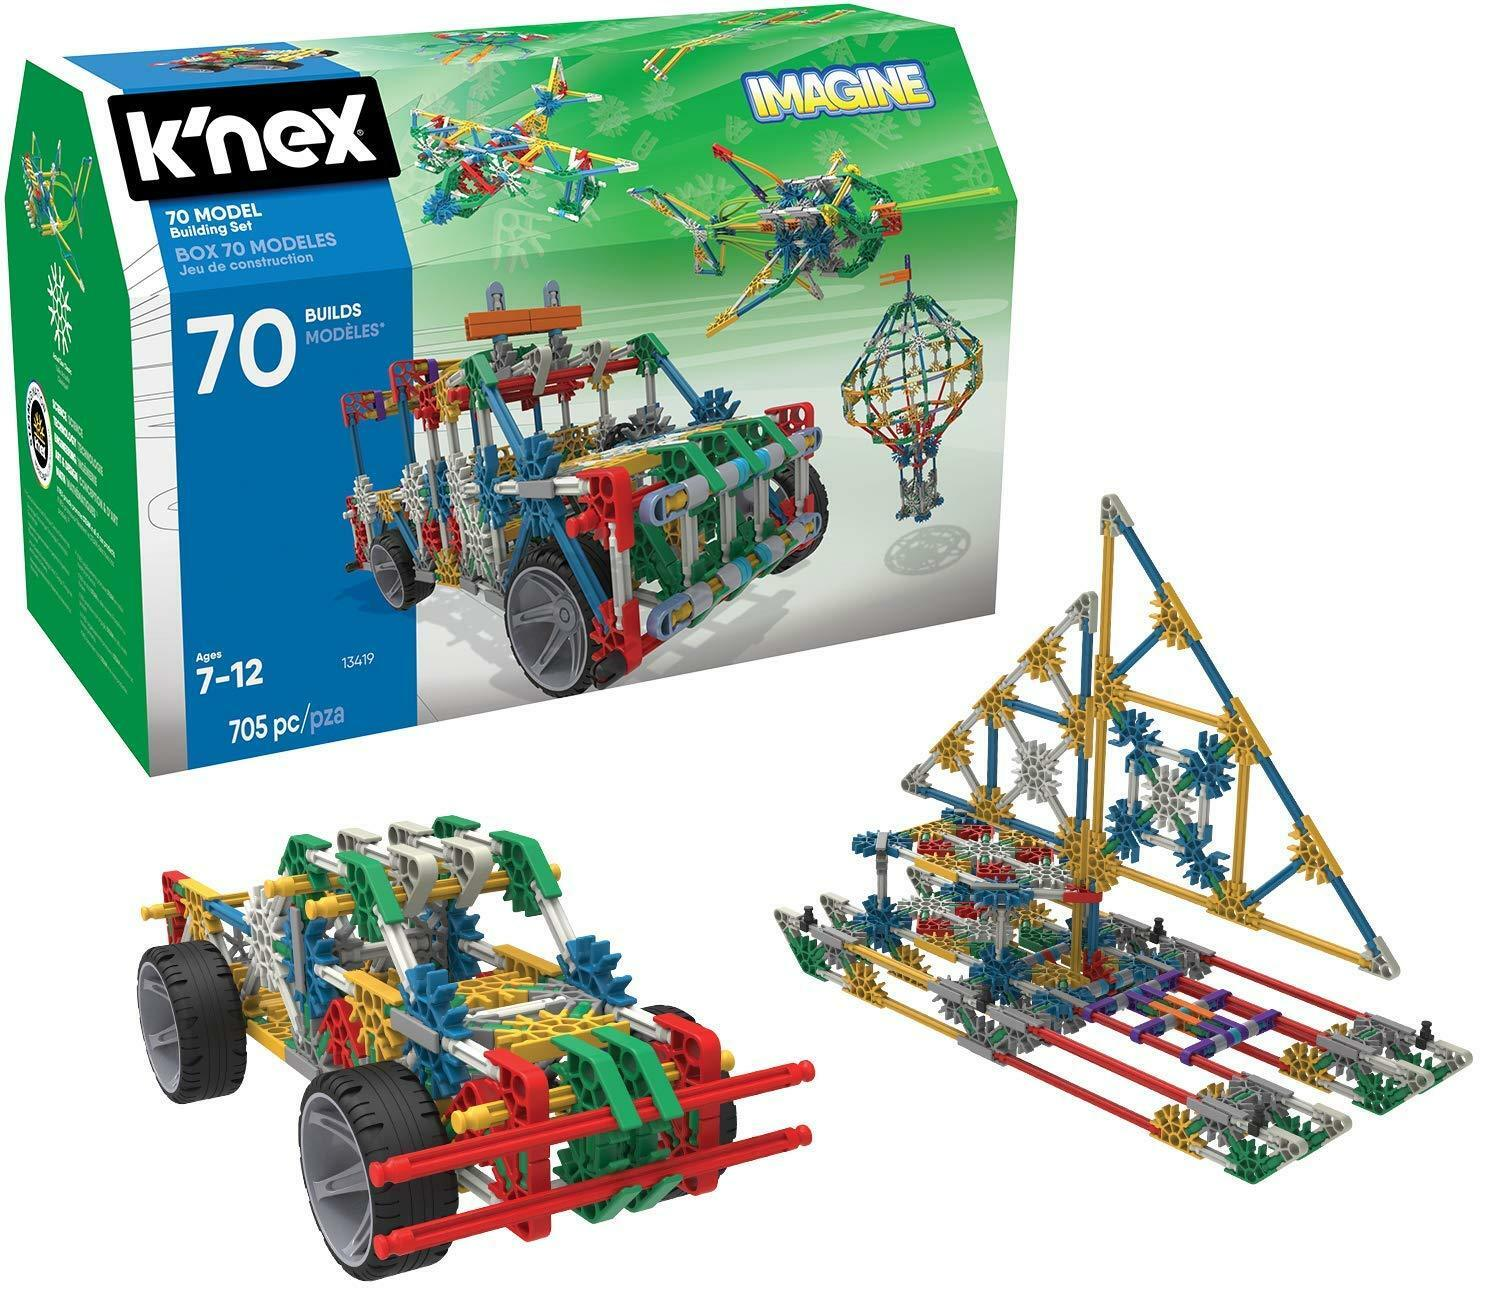 BN BOXED K'NEX Imagine 70 Model BUILDING SET,  Engineering 705 Pieces  7+